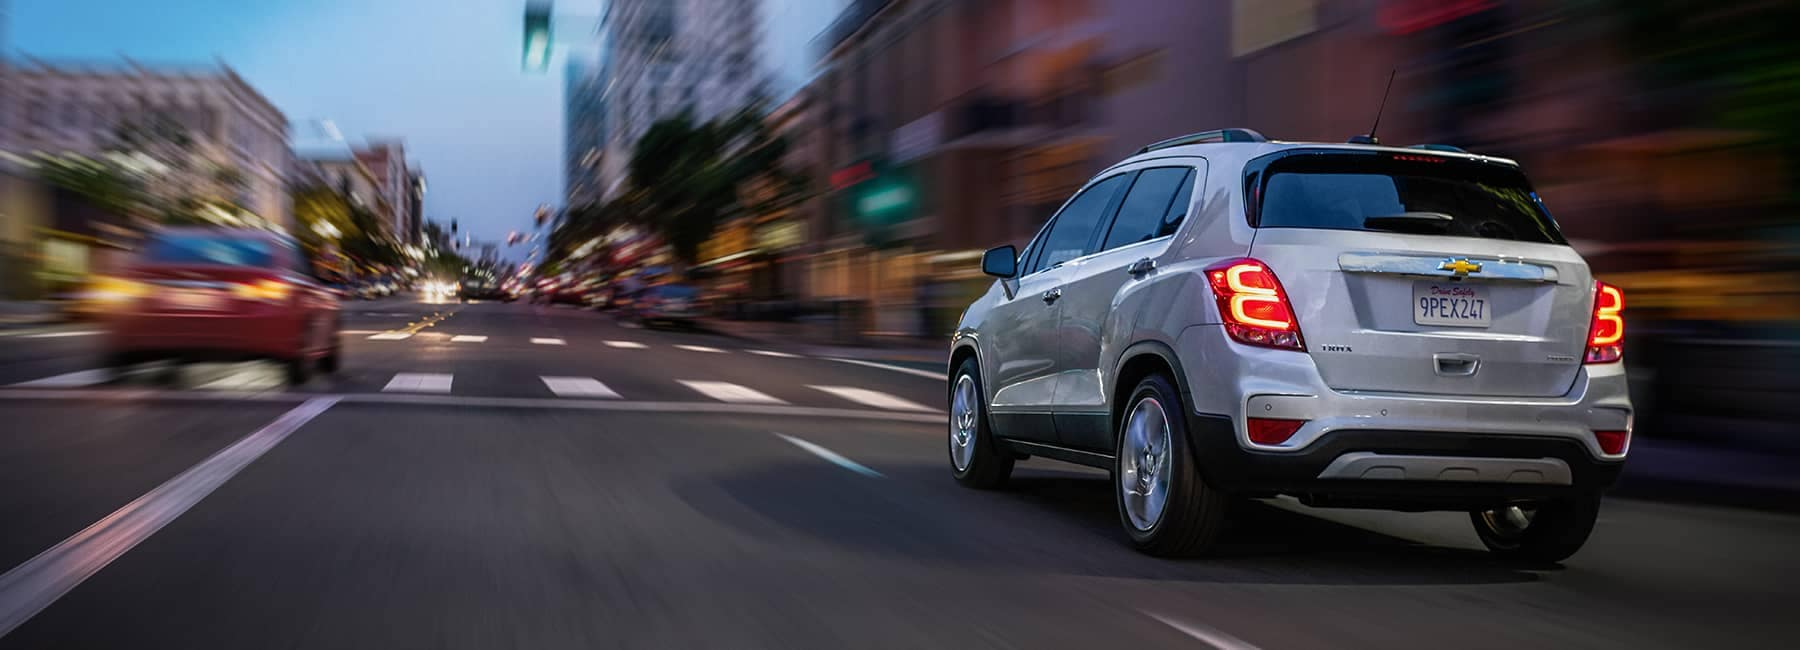 Silver 2020 Chevrolet Trax Driving on a City Rd